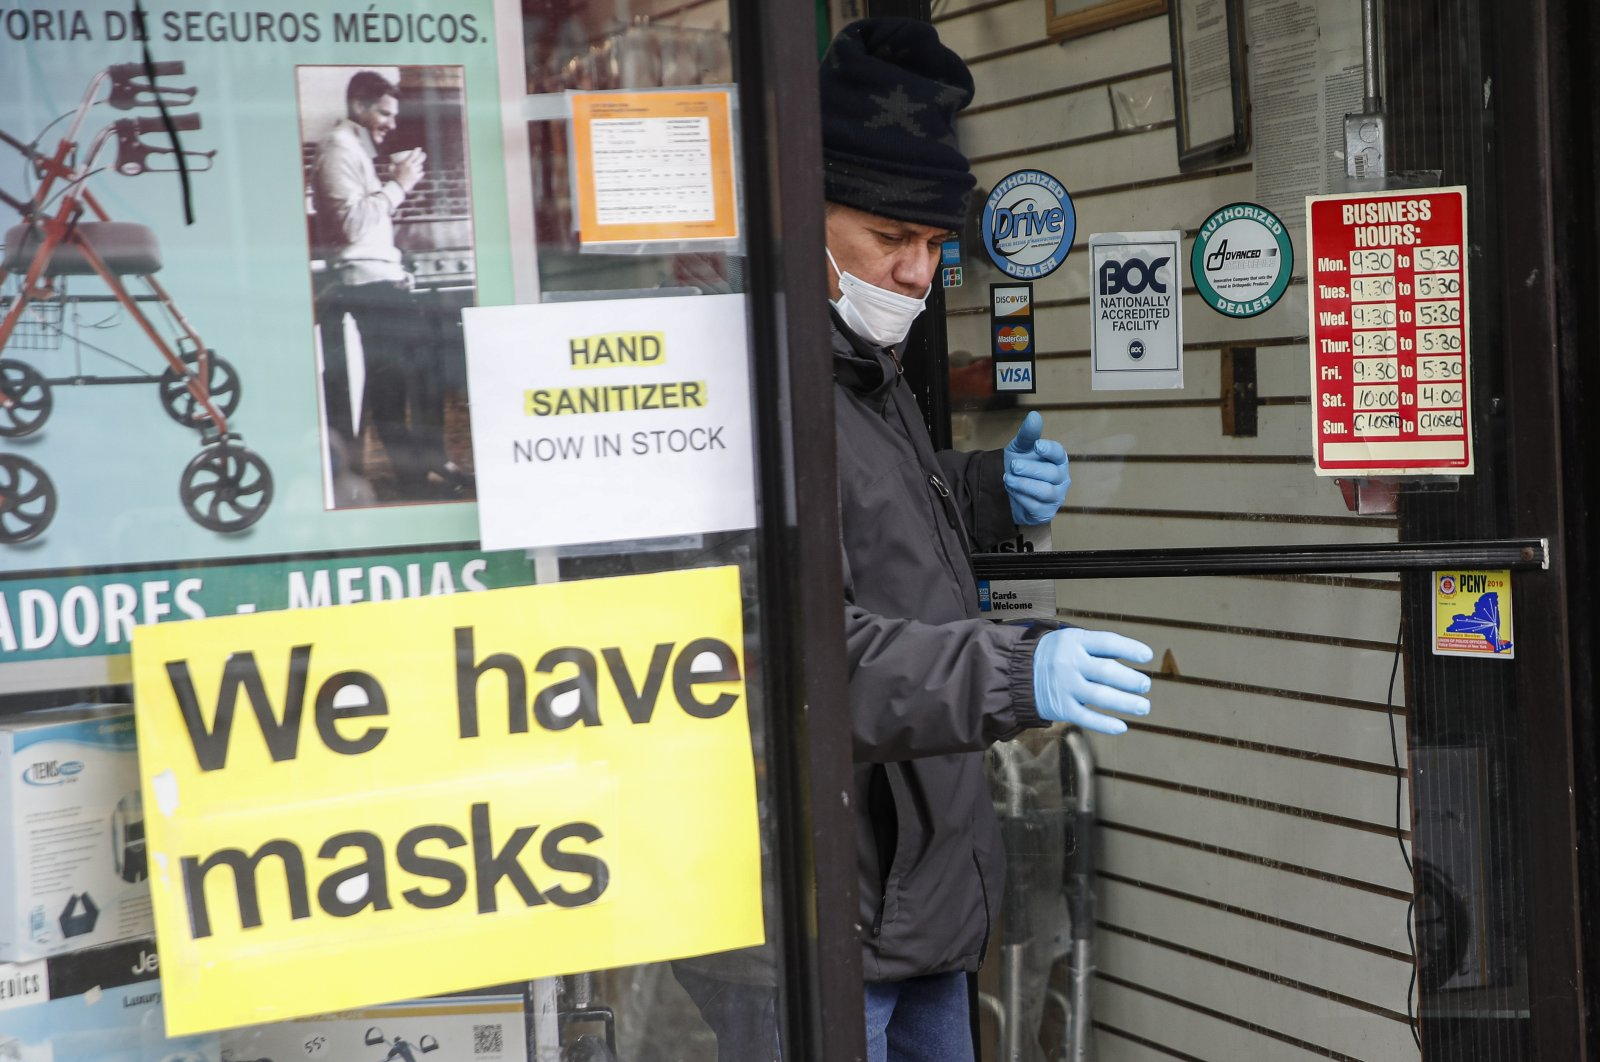 A customer leaves a shop advertising personal protective equipment near Elmhurst Hospital Center, New York, Wednesday, March 25, 2020. (AP Photo)